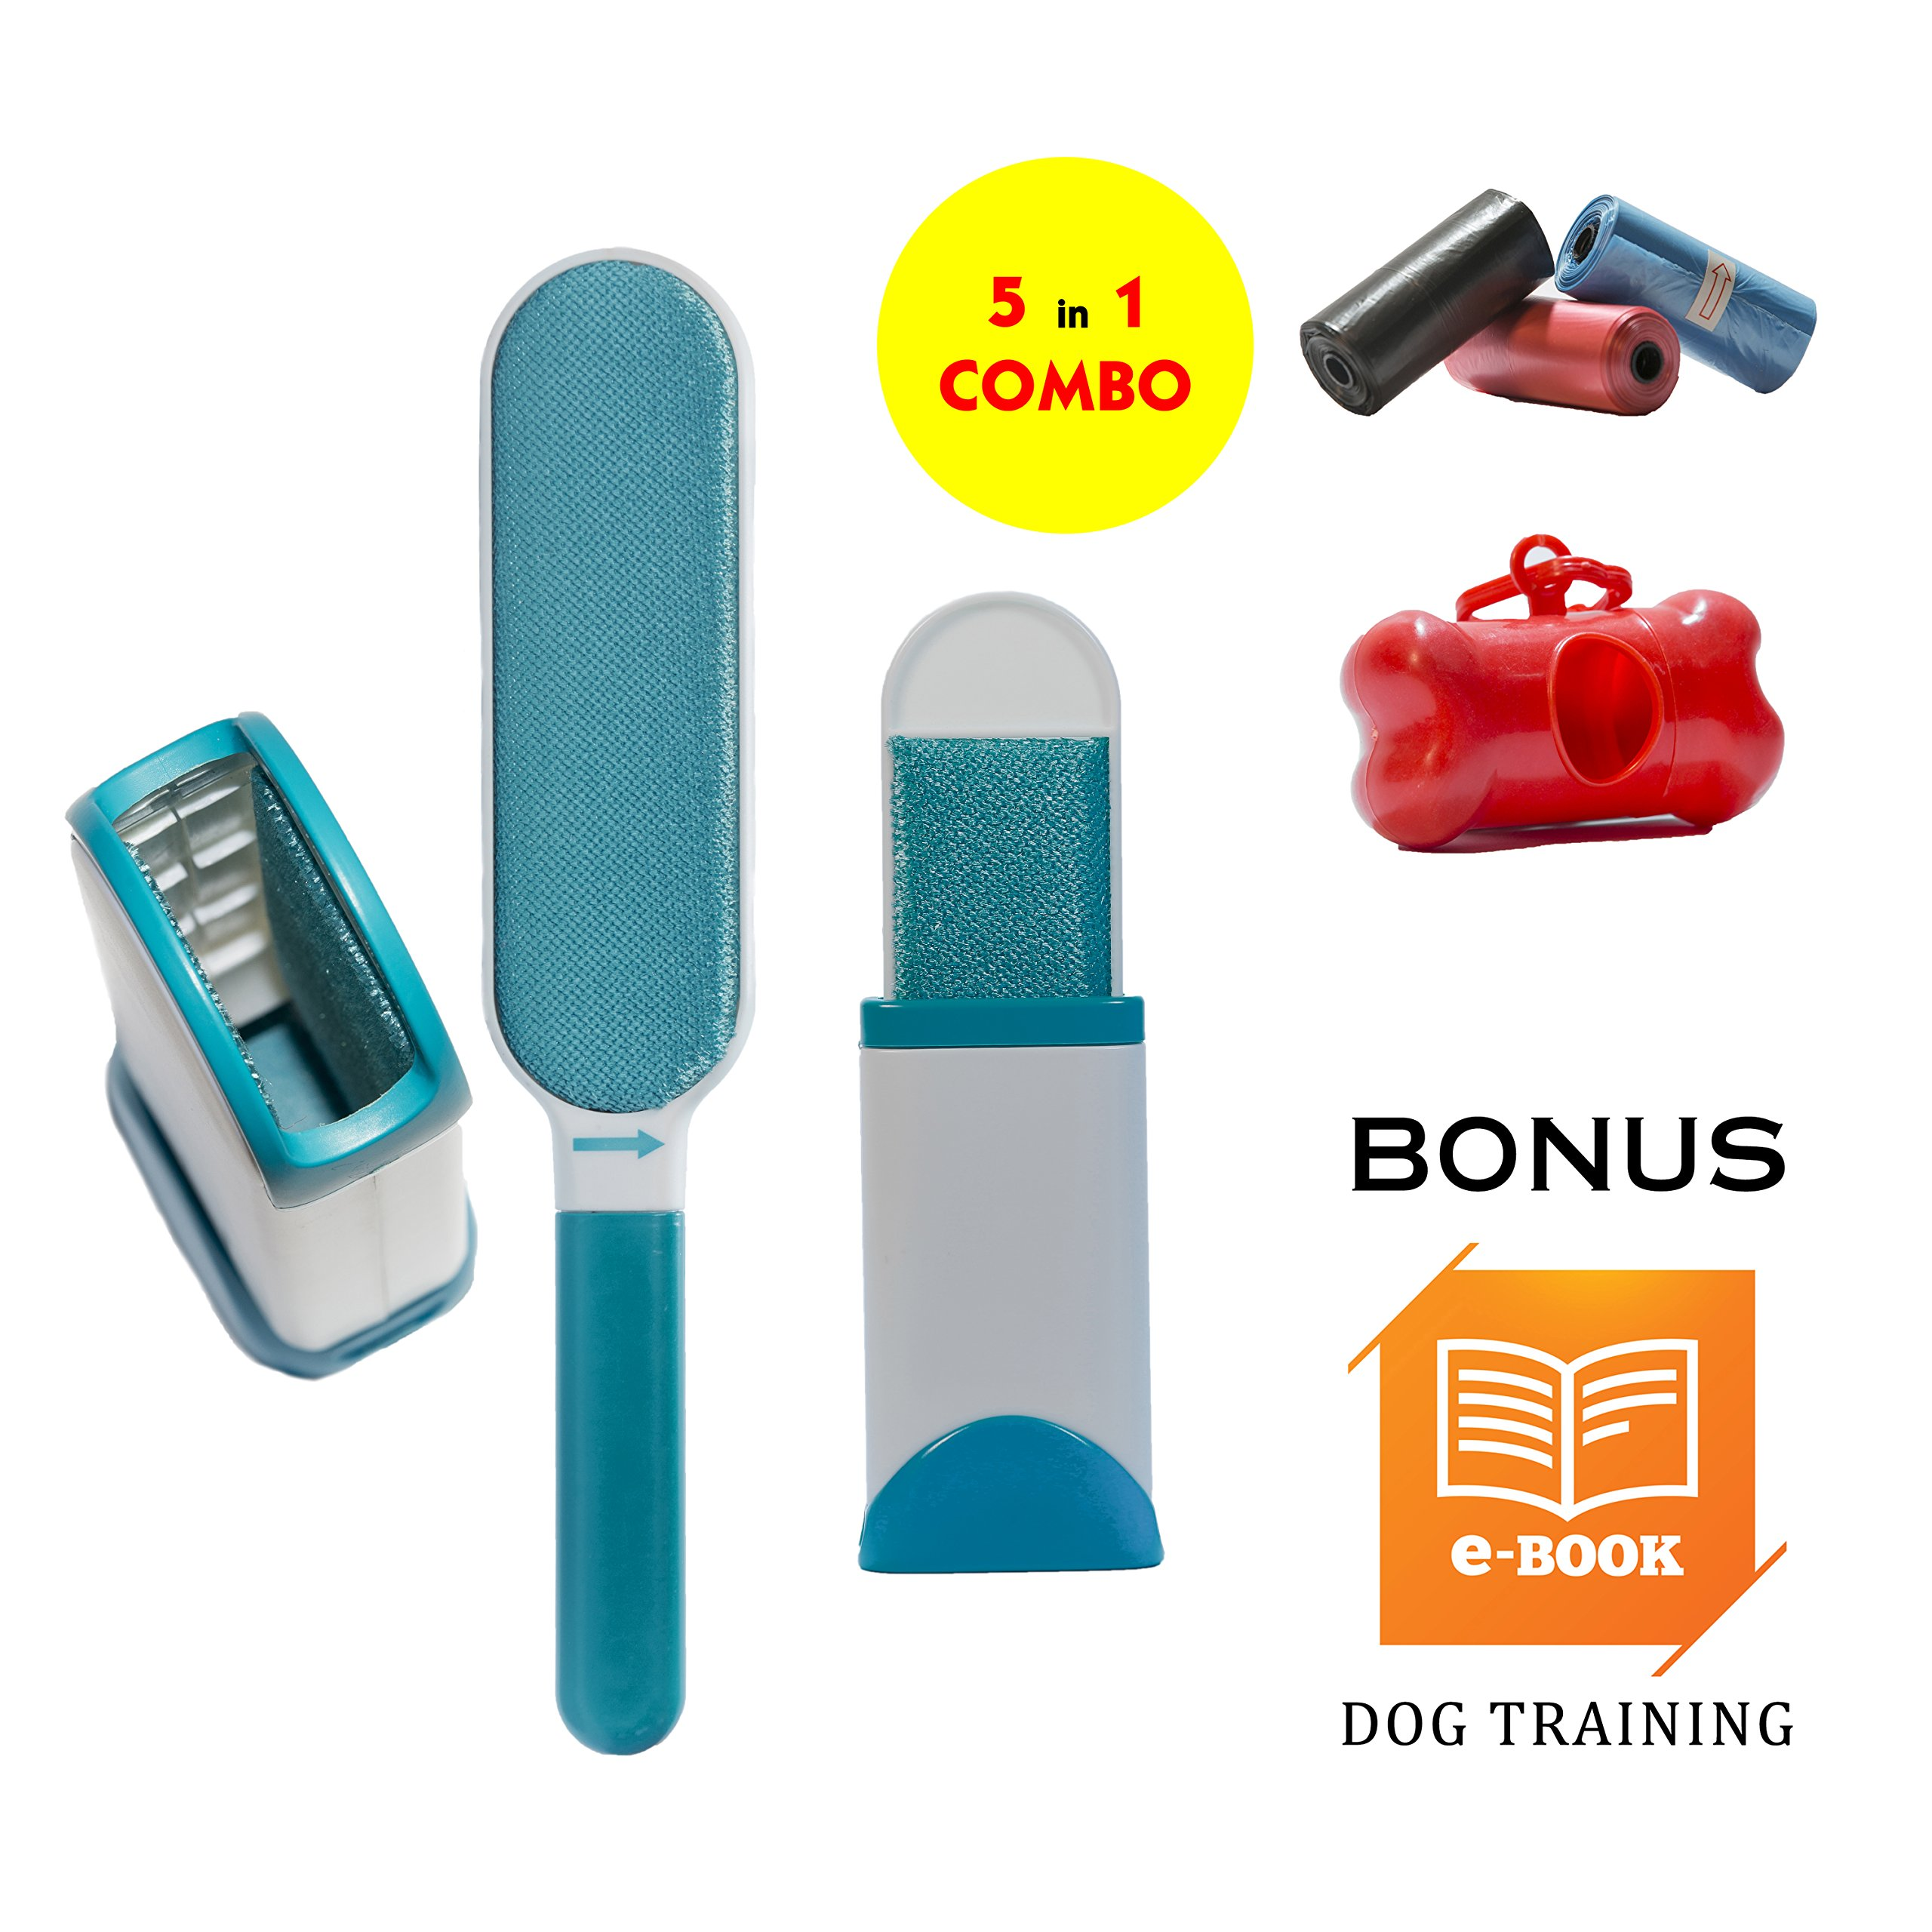 TMC Fur & Lint Remover Clothes Pet Hair Furniture Cleaner Brush Reusable Include Travel Remover, Bag Dispenser, Bag on Roll